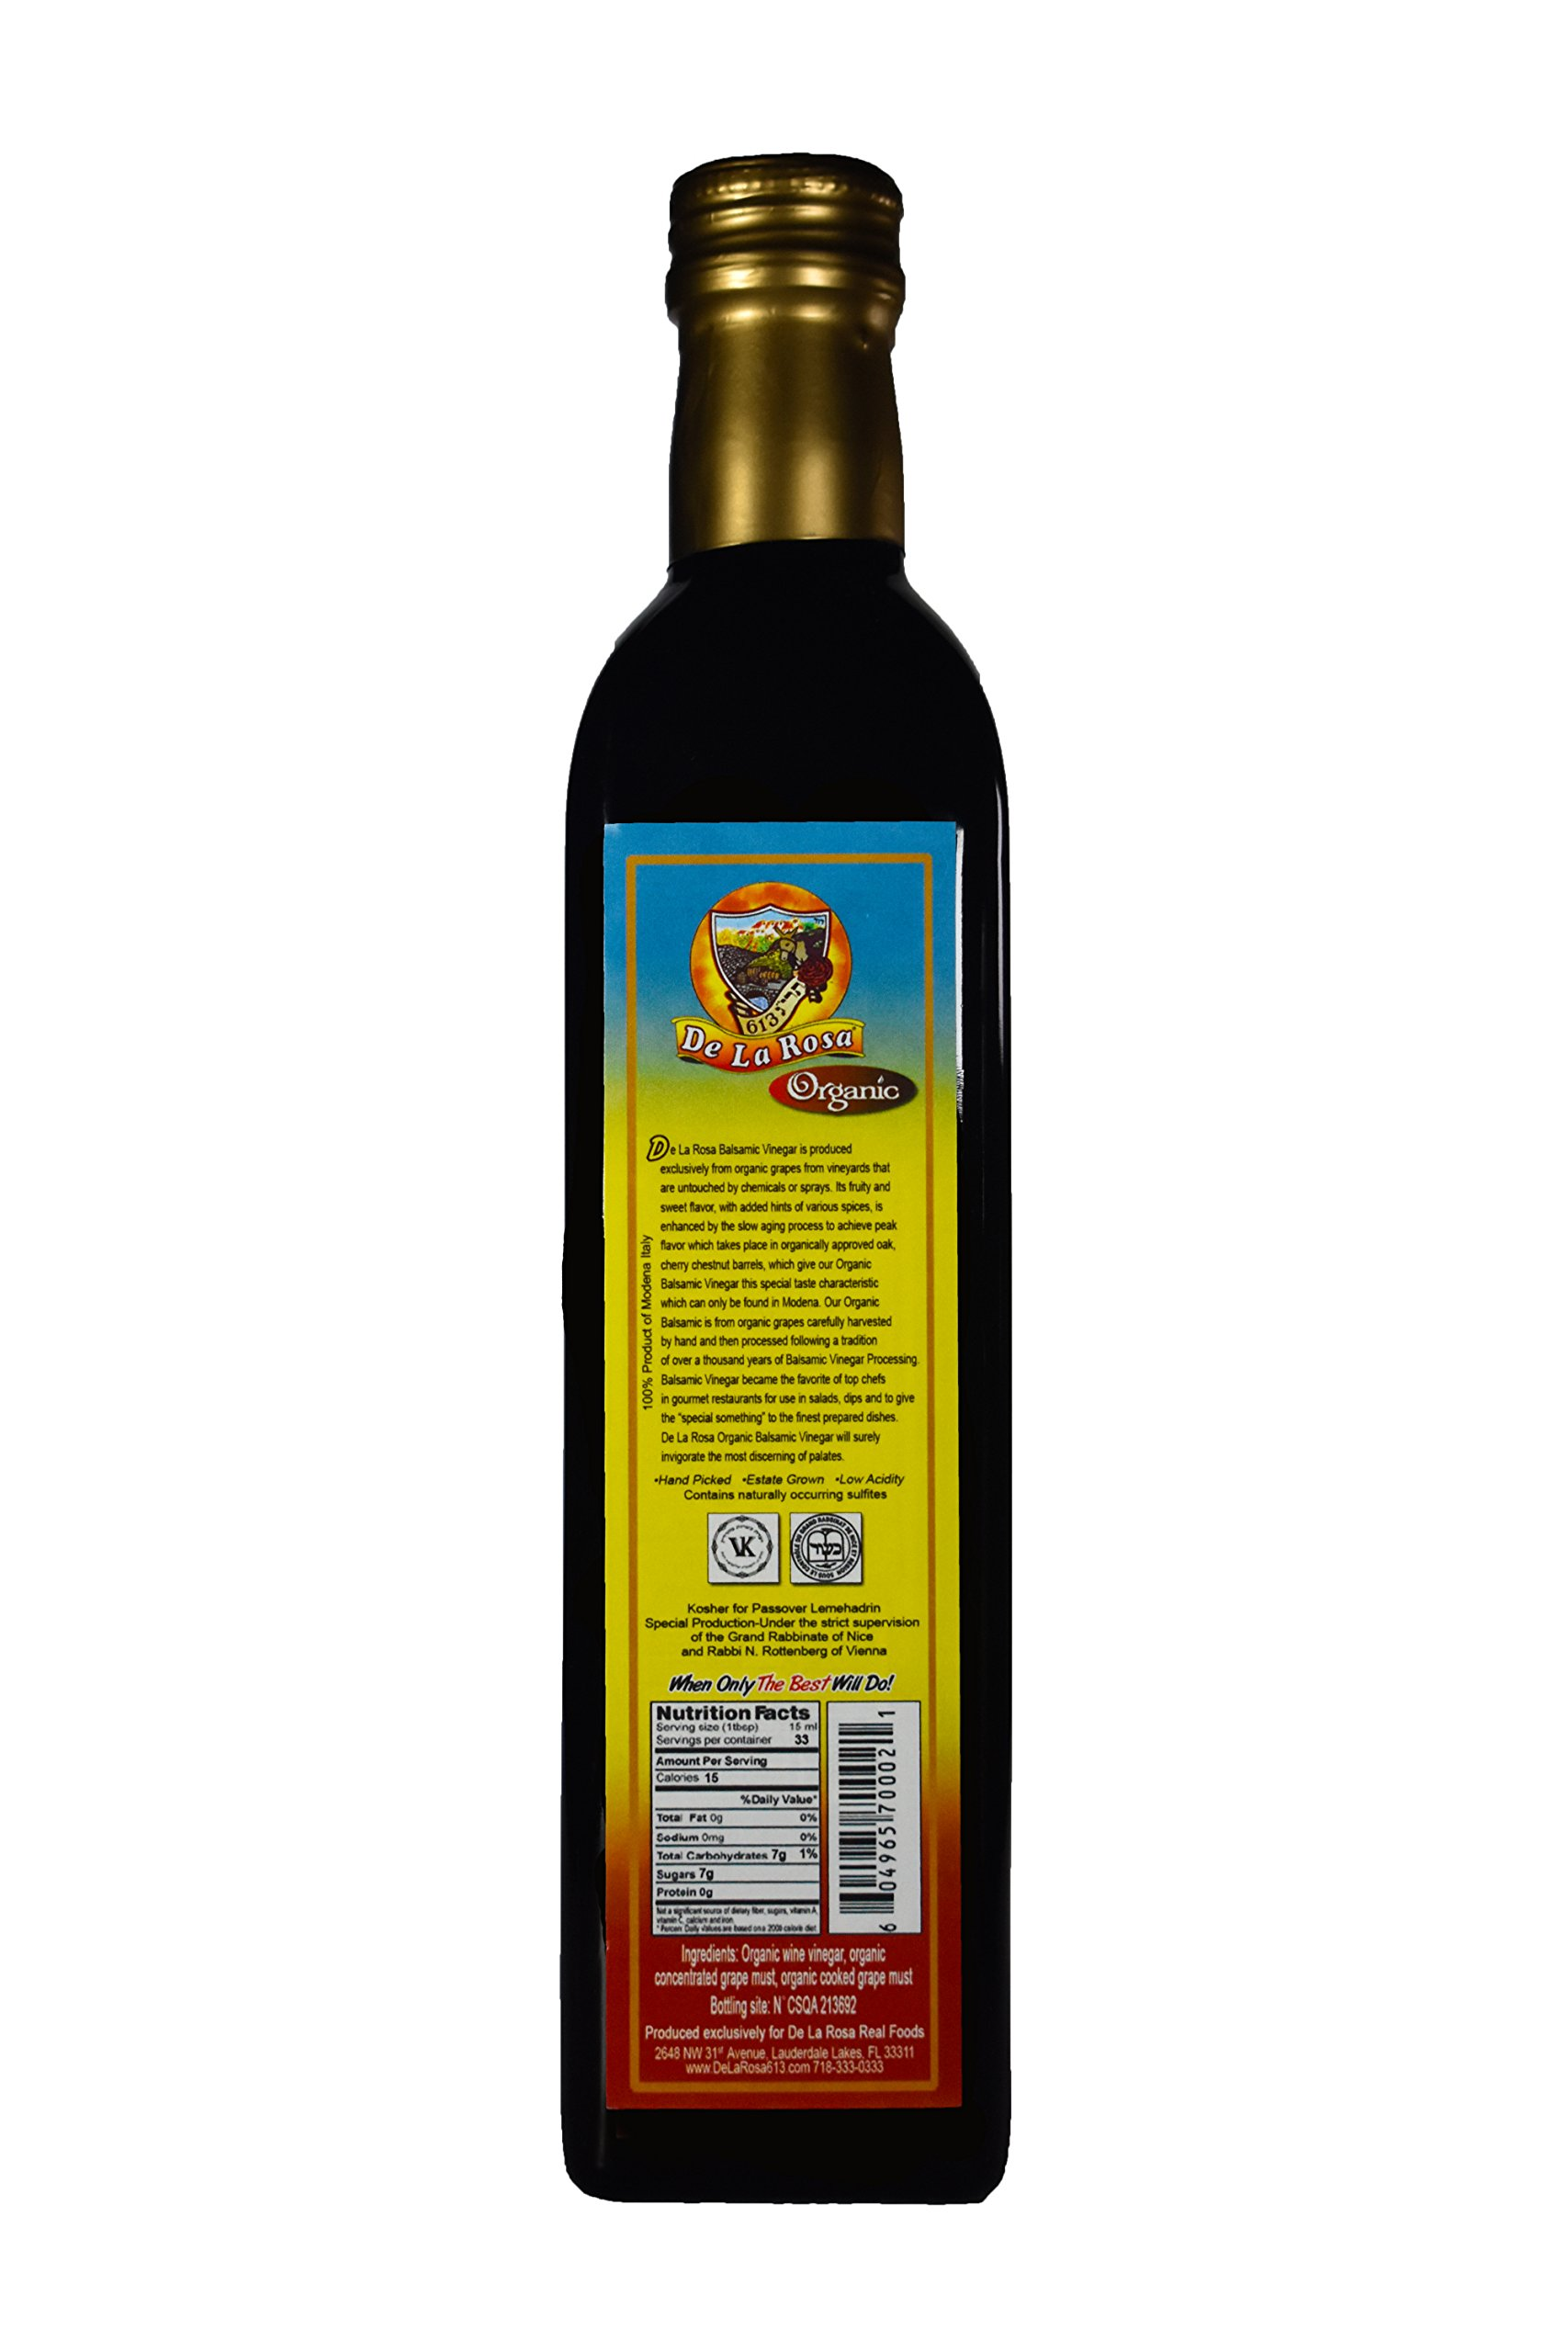 De La Rosa Real Foods & Vineyards - Organic Balsamic Vinegar of Modena (16.9 oz/500 ml) 3 100% Organic Balsamic Vinegar of Modena Kosher for Passover & all year around USDA Certified Organic. Vegan. GMO-Free. Gluten Free. No additives or Preservatives added